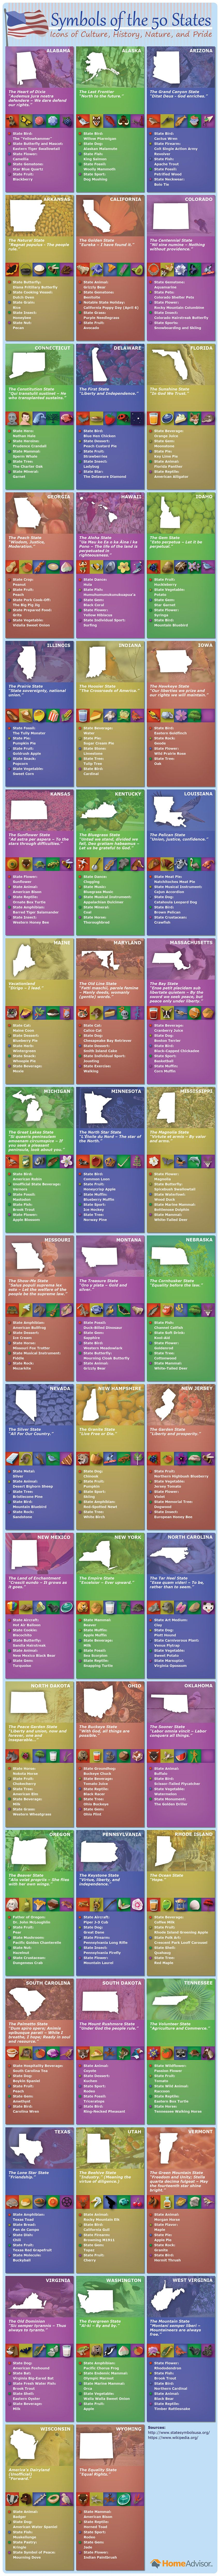 Free 50 States Lapbook Resources And Printables Teaching